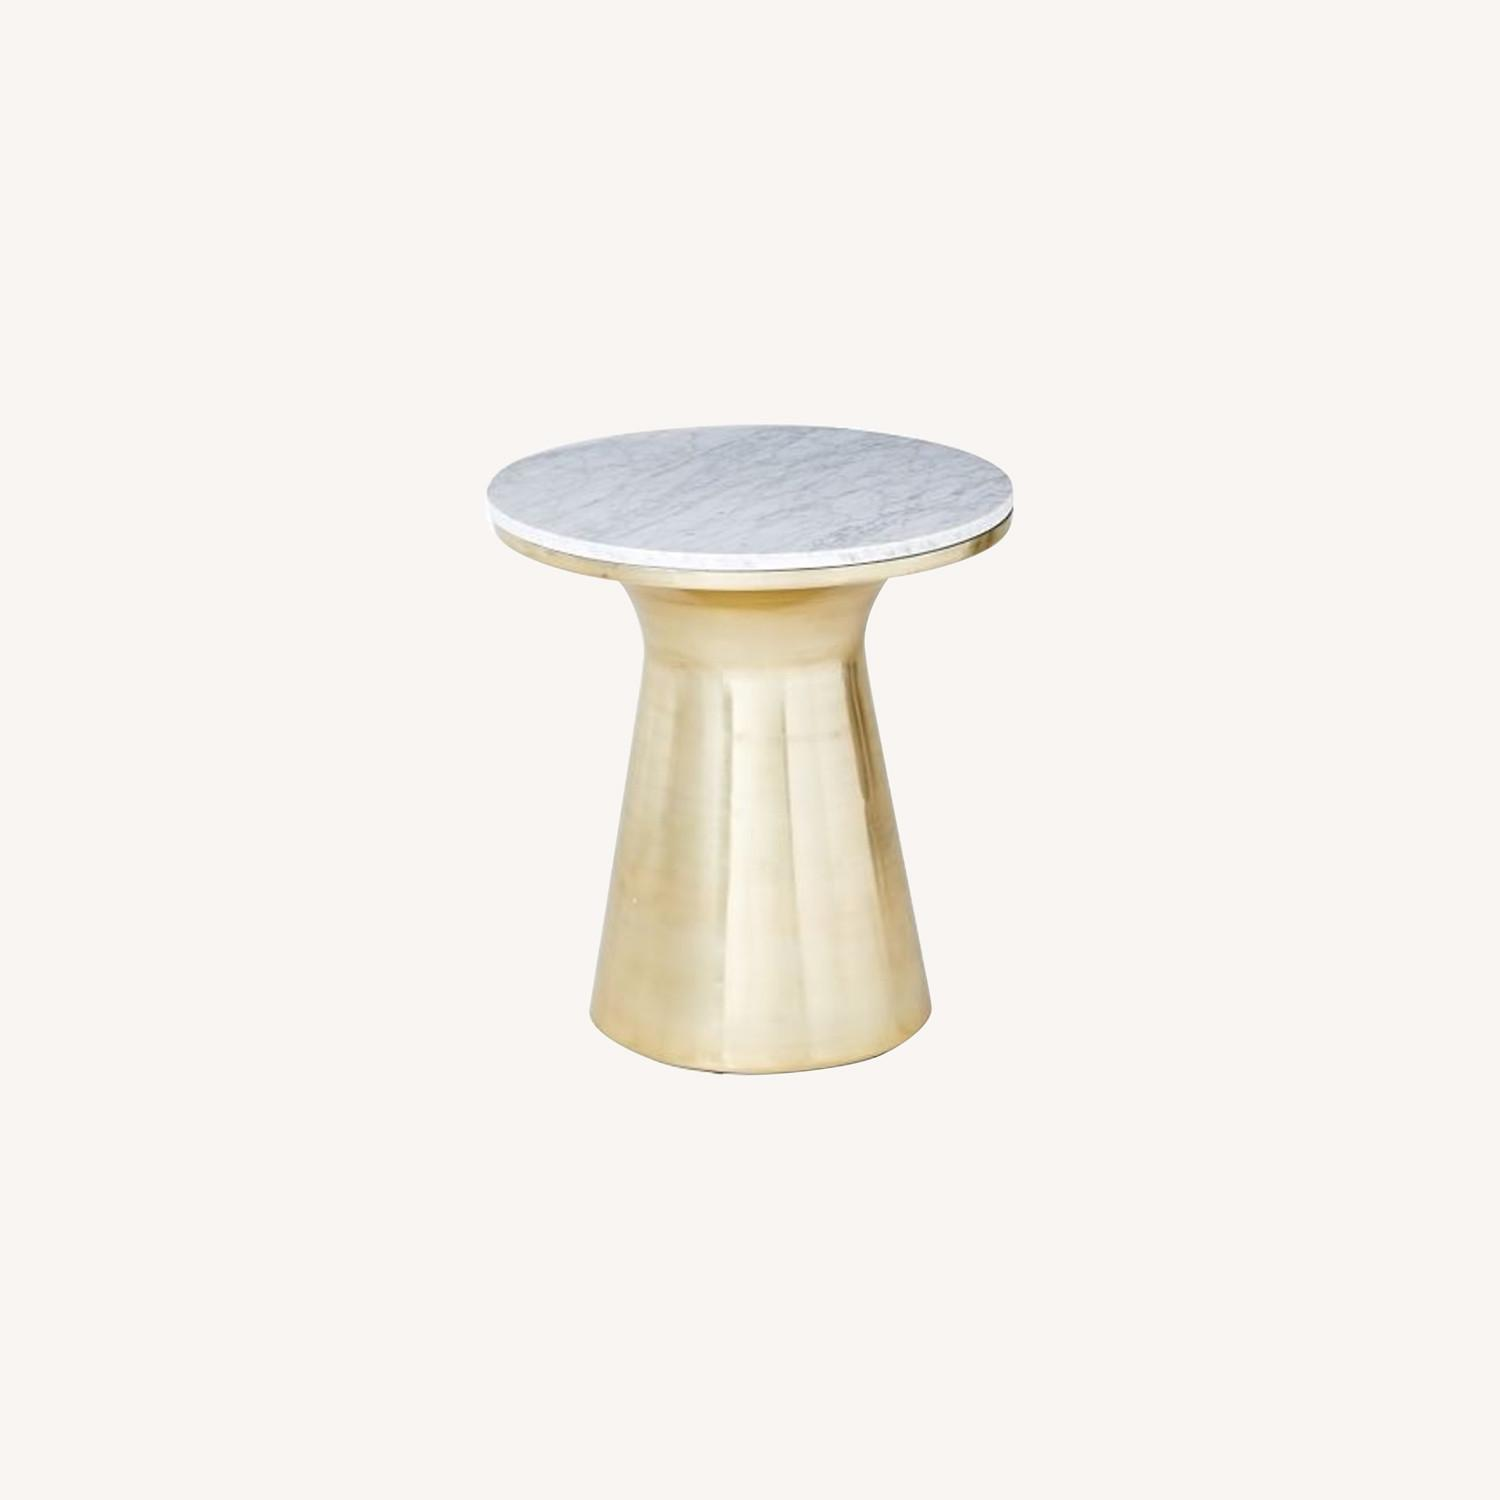 West Elm Marble Topped Pedestal End Table - image-0